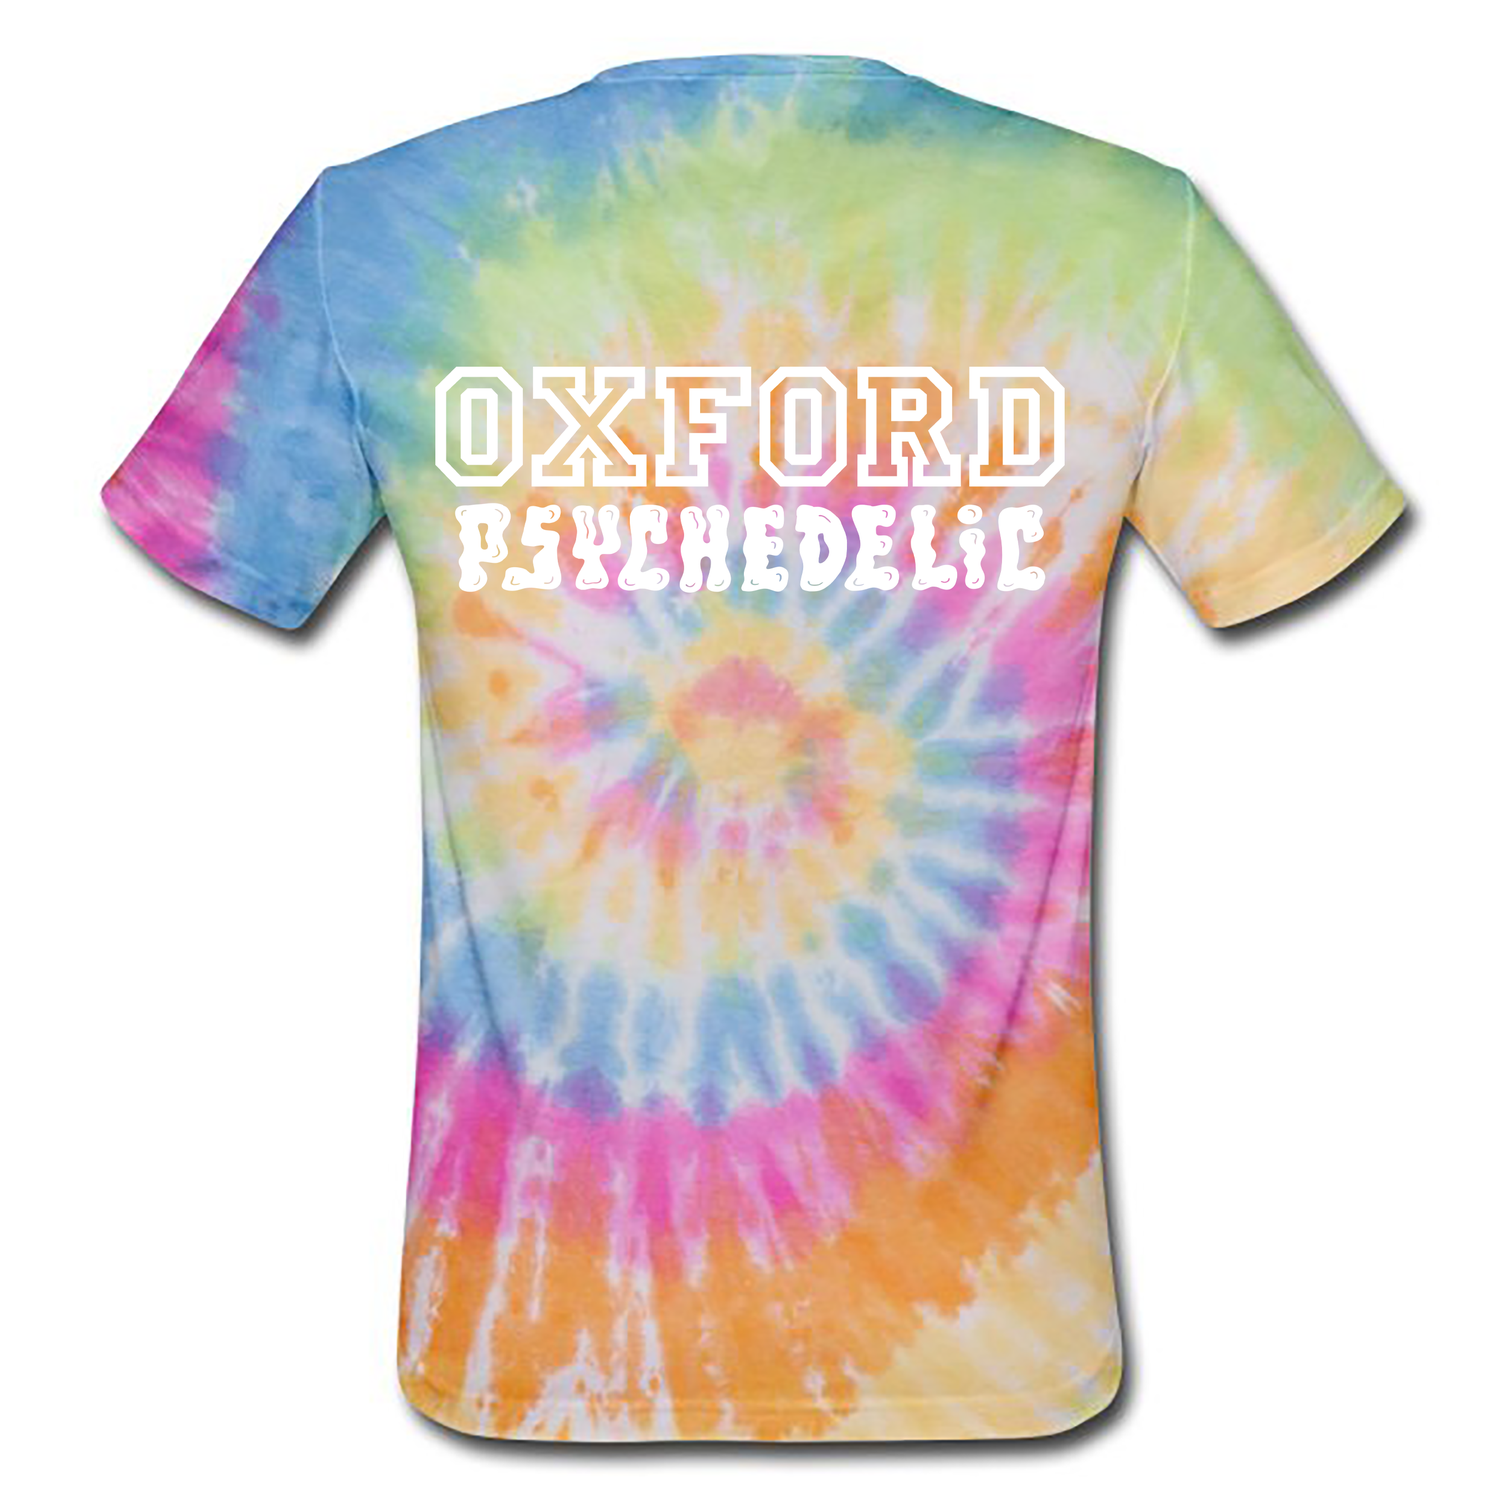 Image of Pre-order varsity unisex classic jersey t-shirt tie-dye (certified organic cotton by Earth Positive)